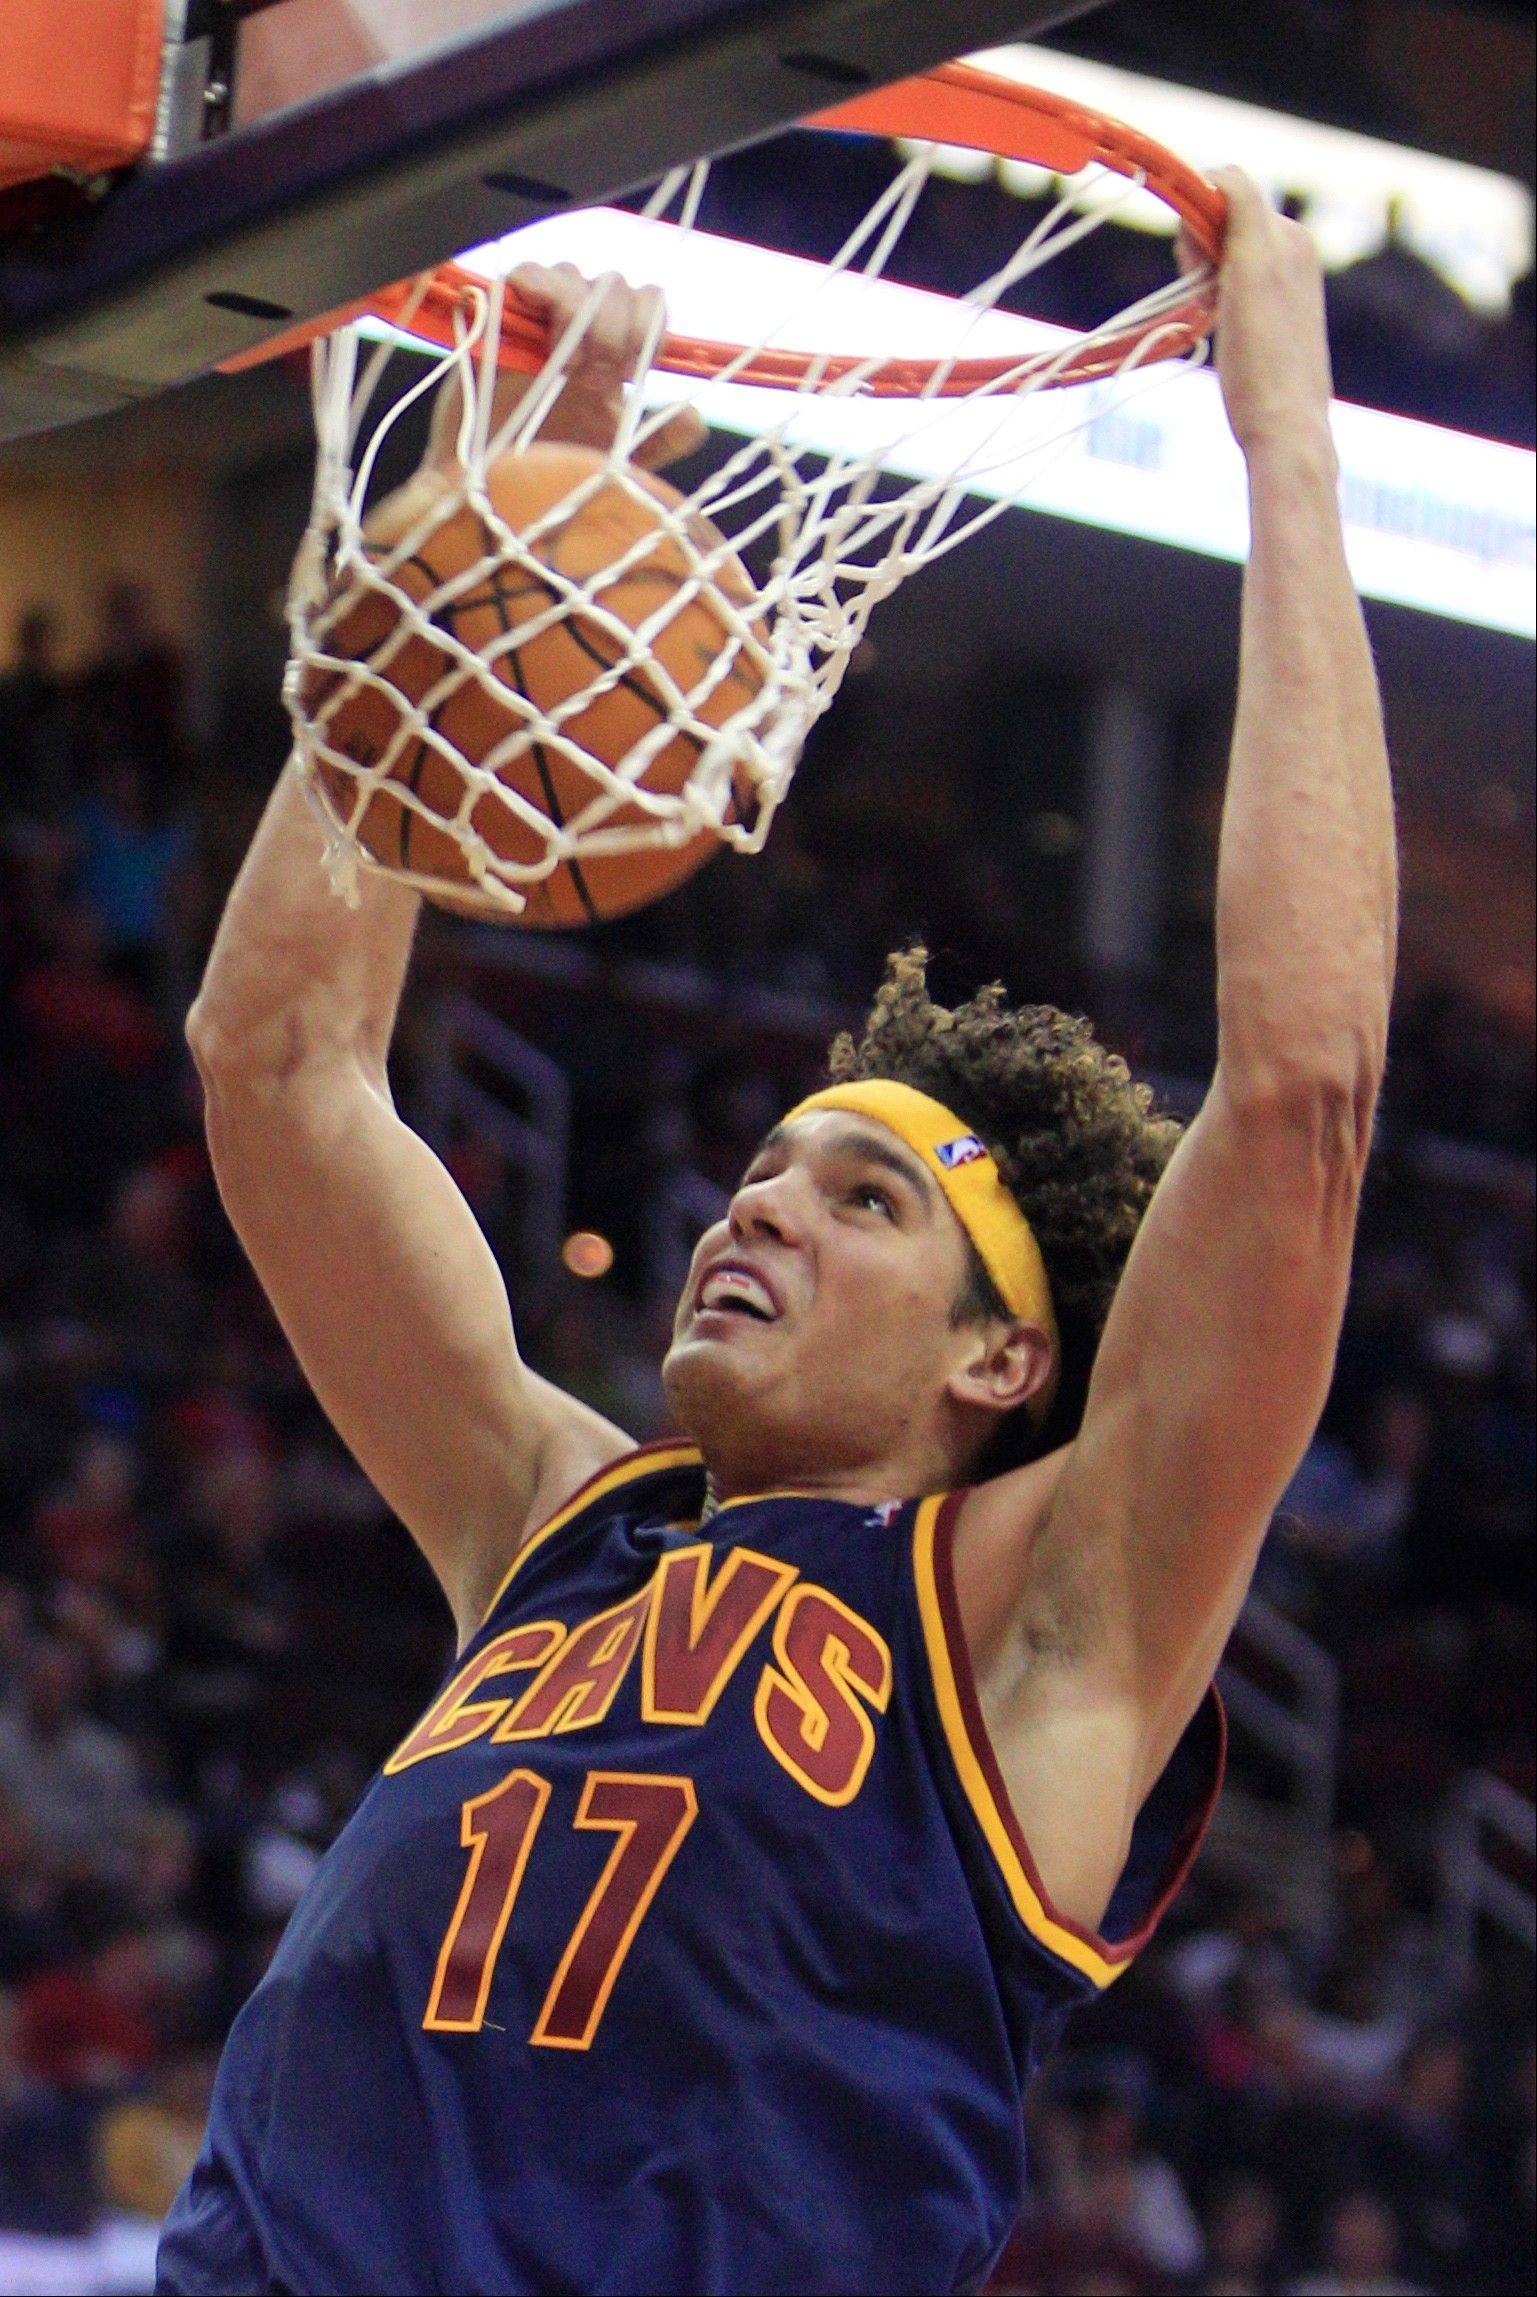 The Cleveland Cavaliers' Anderson Varejao dunks Wednesday against the New York Knicks in the second quarter.